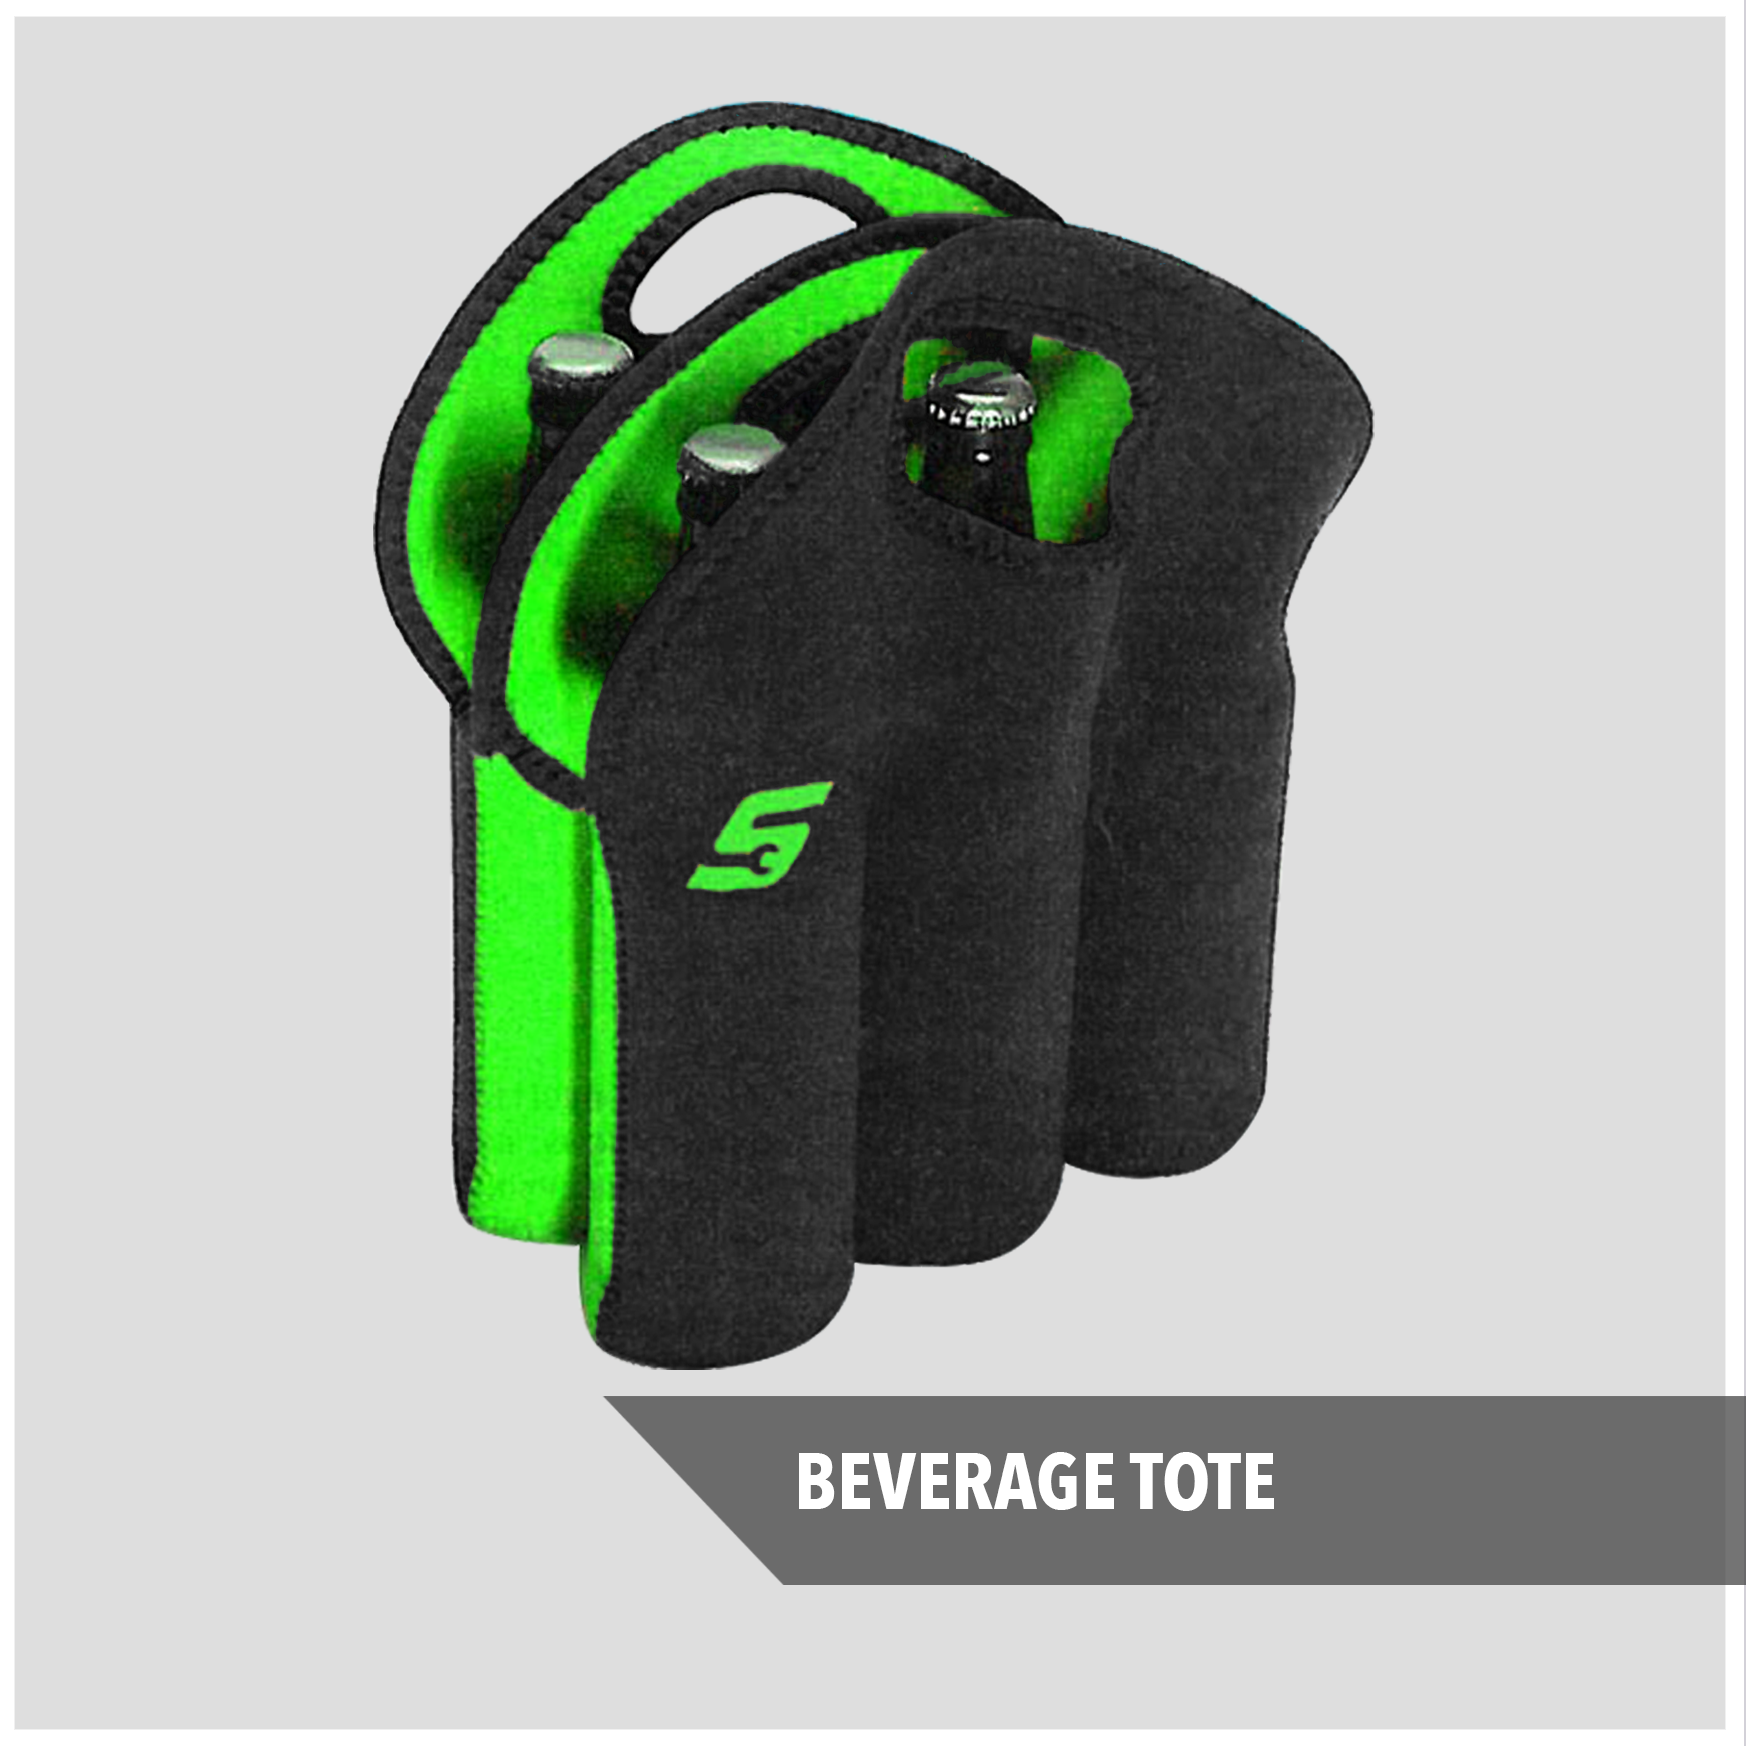 CP_FEATURED_BEVERAGETOTE.png